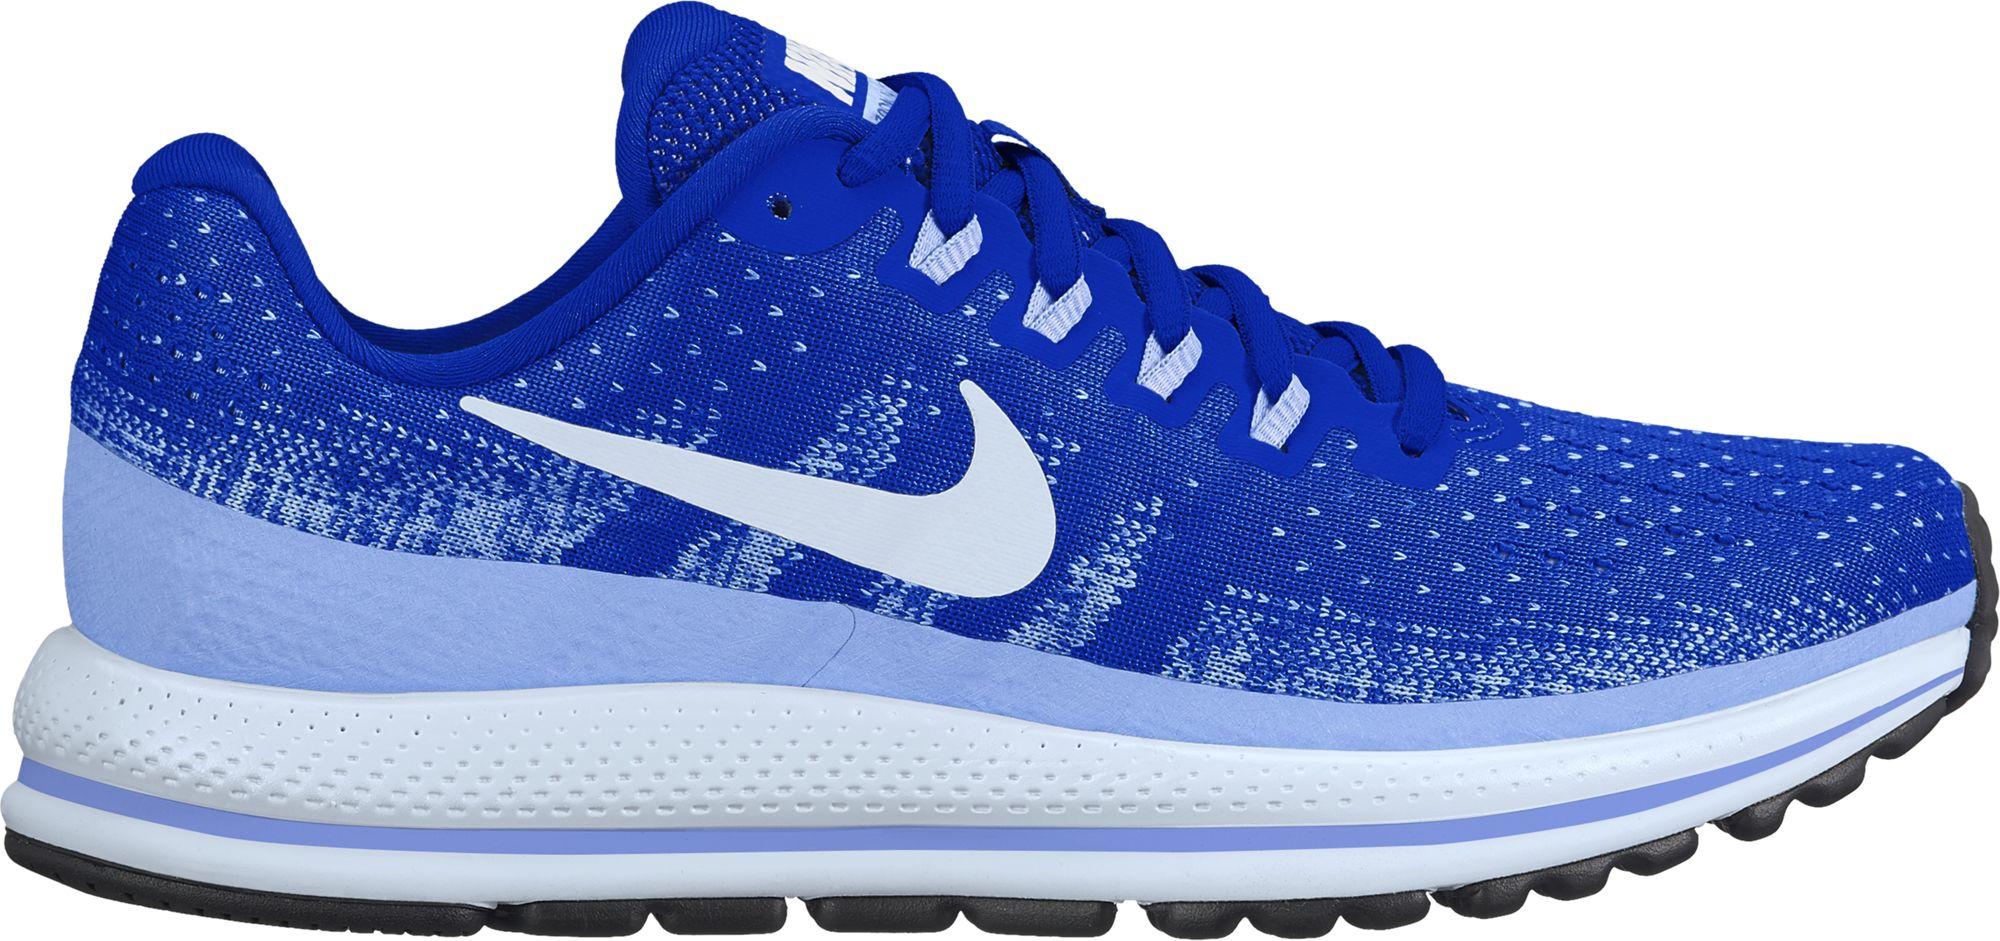 detailed pictures 97d23 90197 NIKE. WMNS Air Zoom Vomero 13. Trakks Femme Chaussures ...